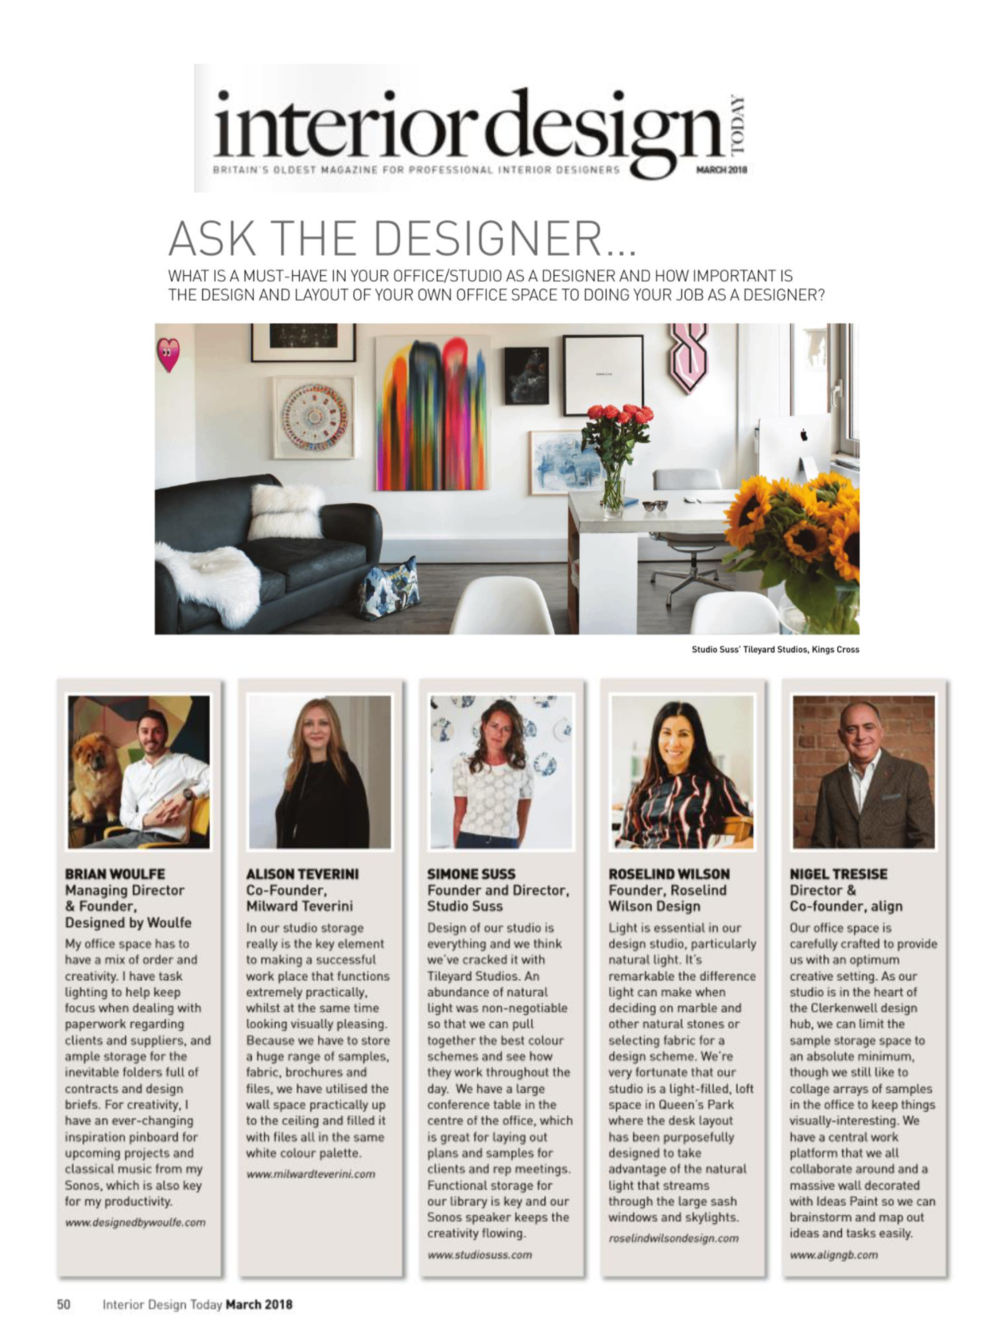 Designed by Woulfe, Interior Design Today Magazine, Ask The Designer, Brian Woulfe